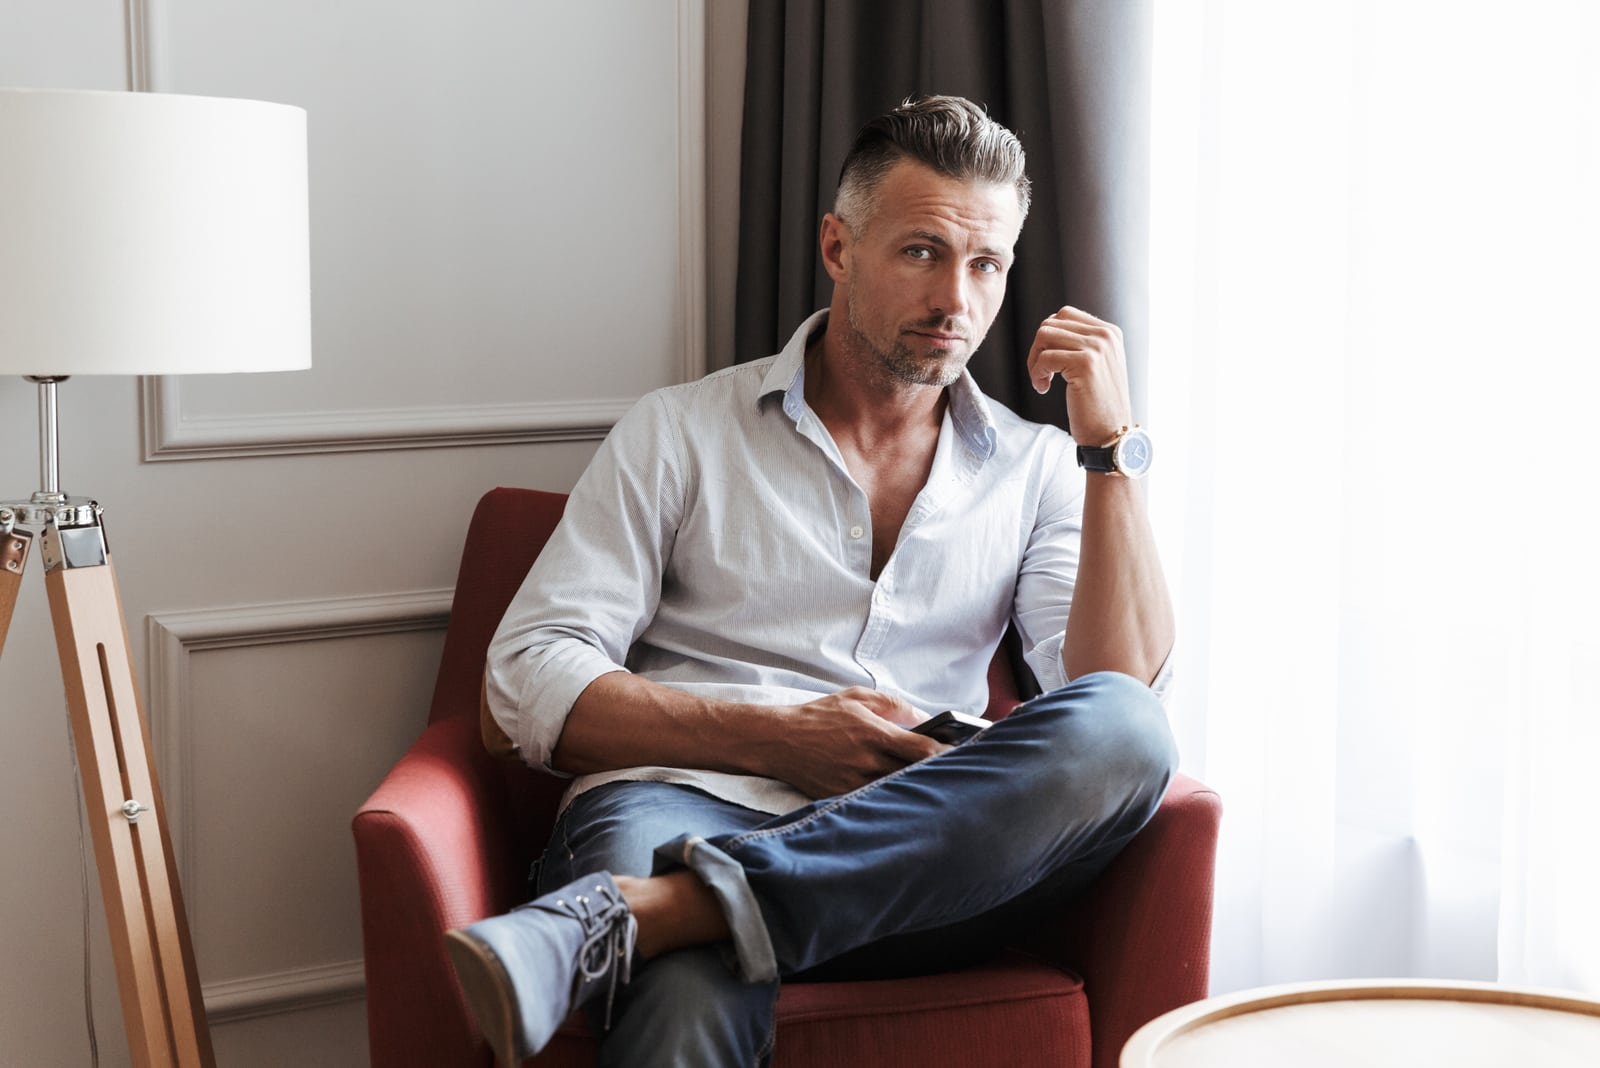 a man sitting in an armchair with a phone in his hand